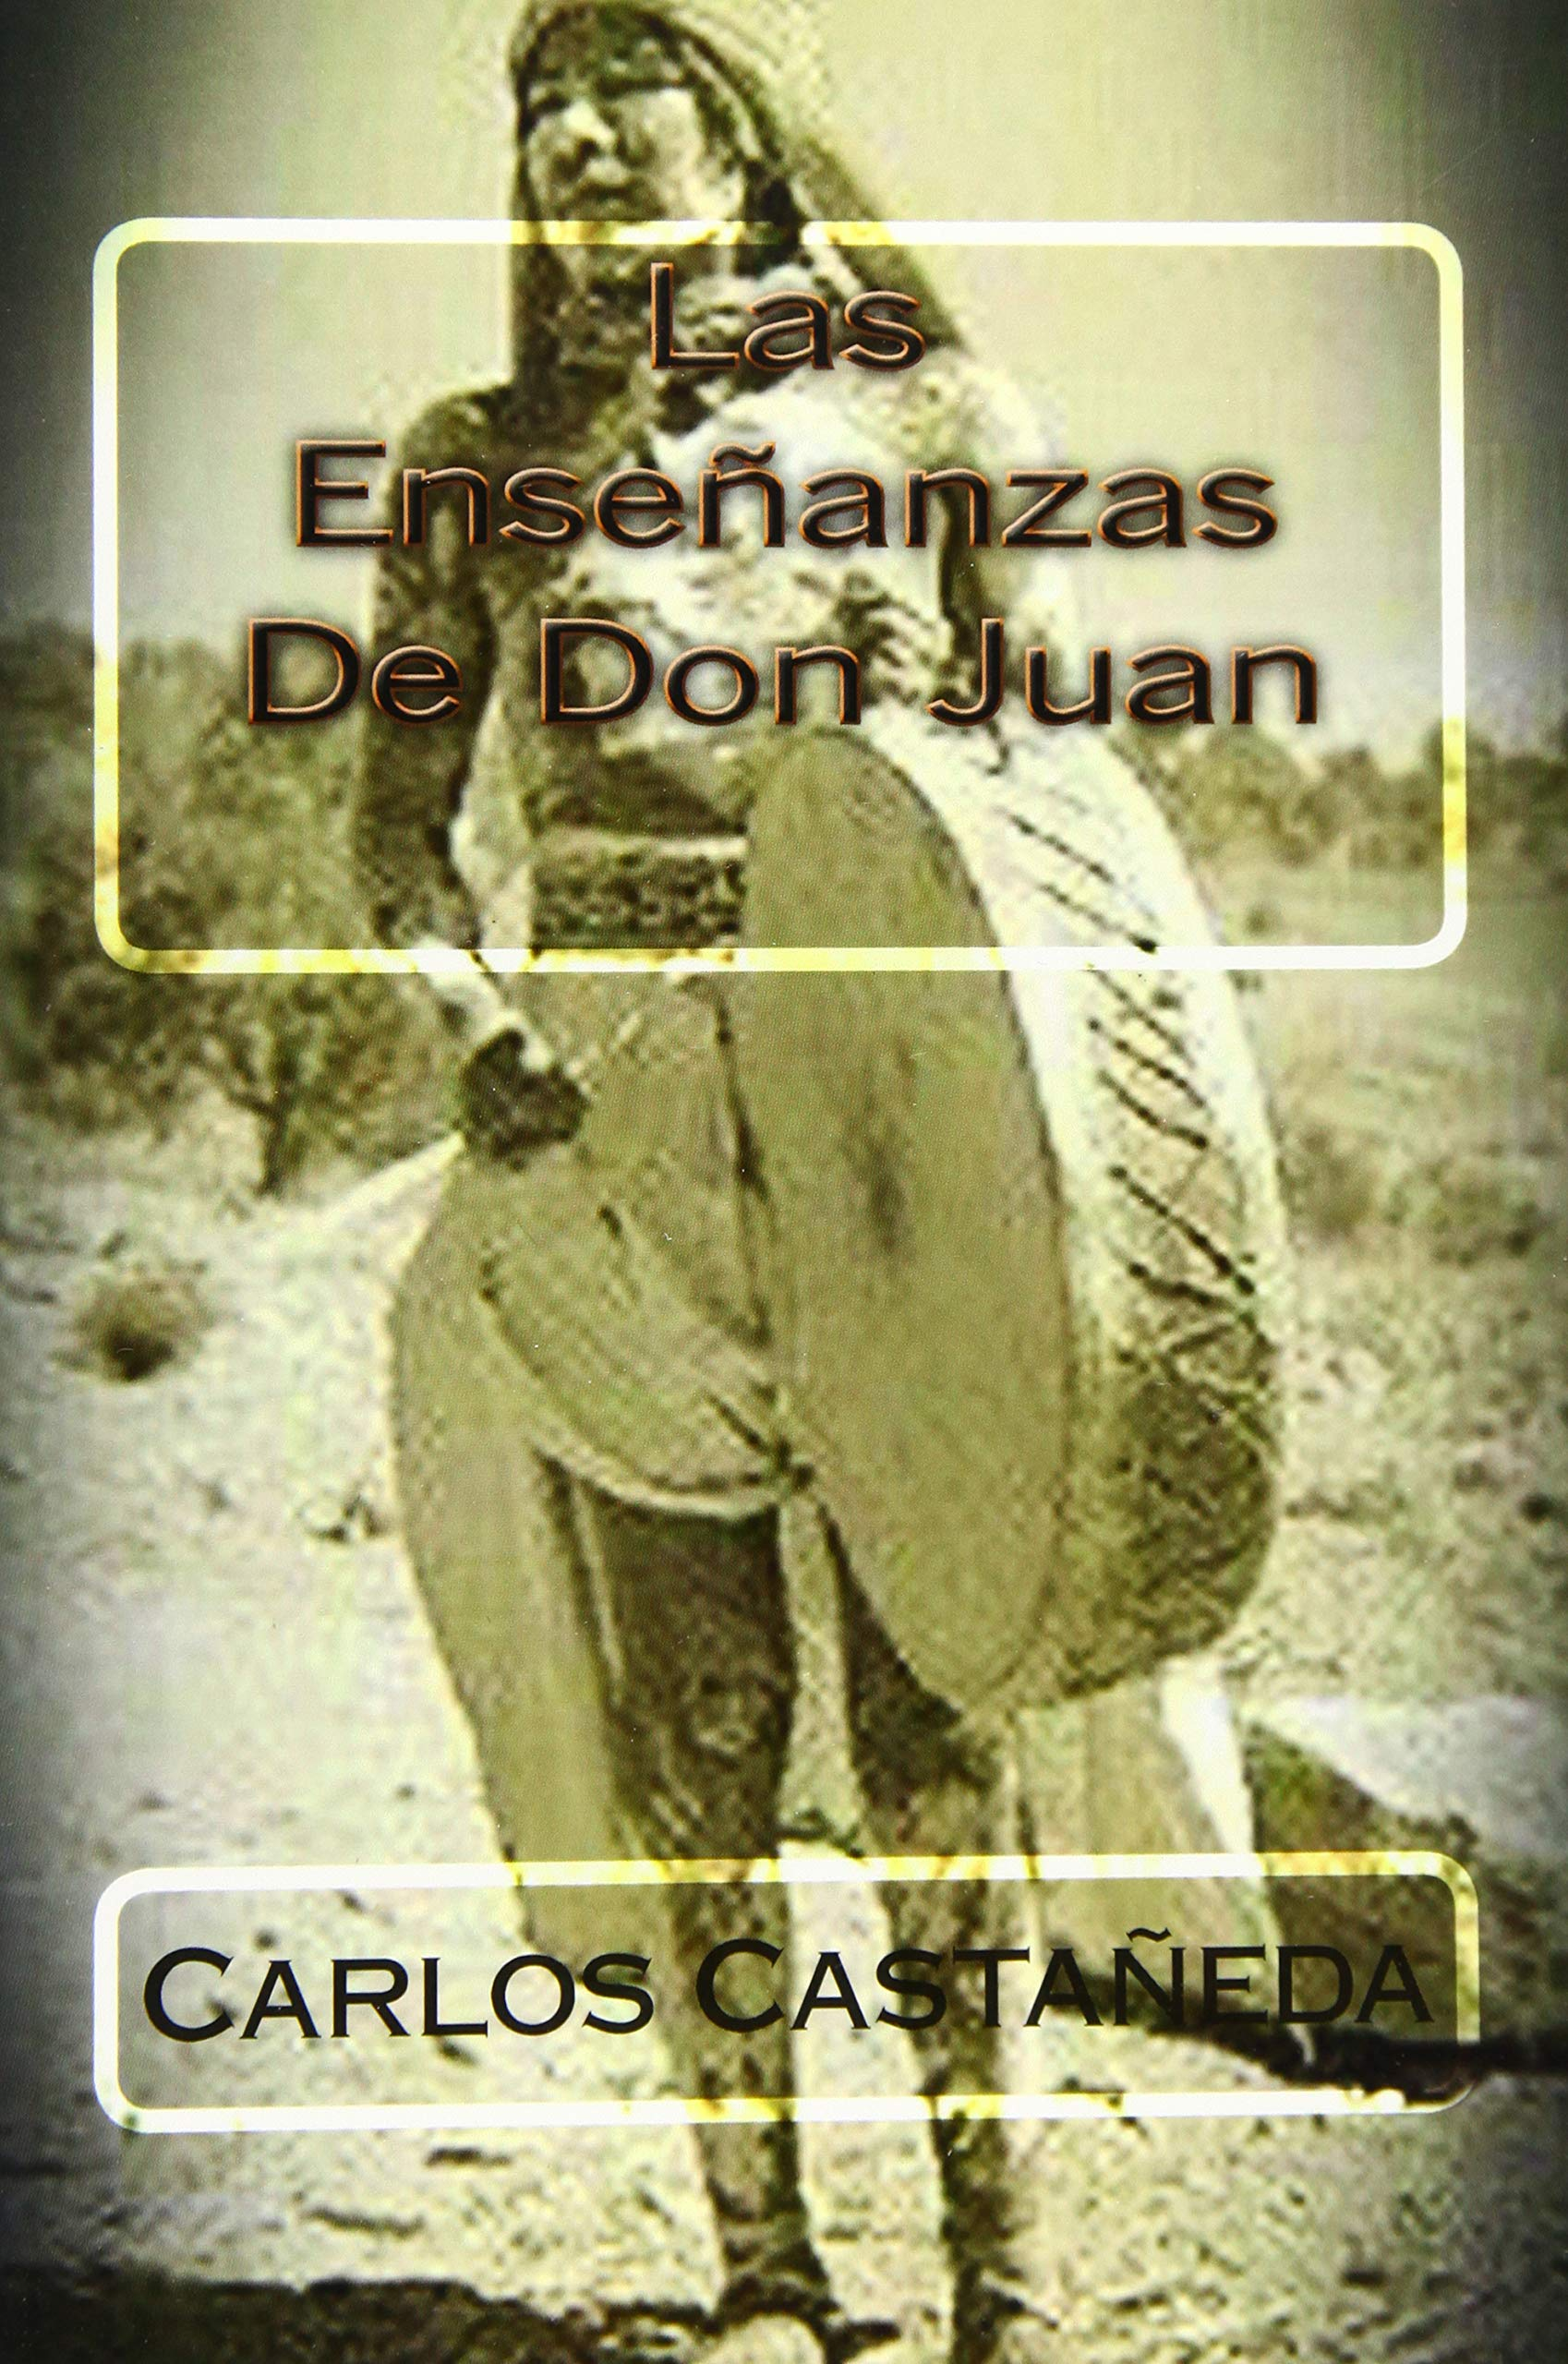 Las Ensenanzas De Don Juan Amazon Co Uk Castaneda Carlos Hernandez B Martin 9781514260630 Books